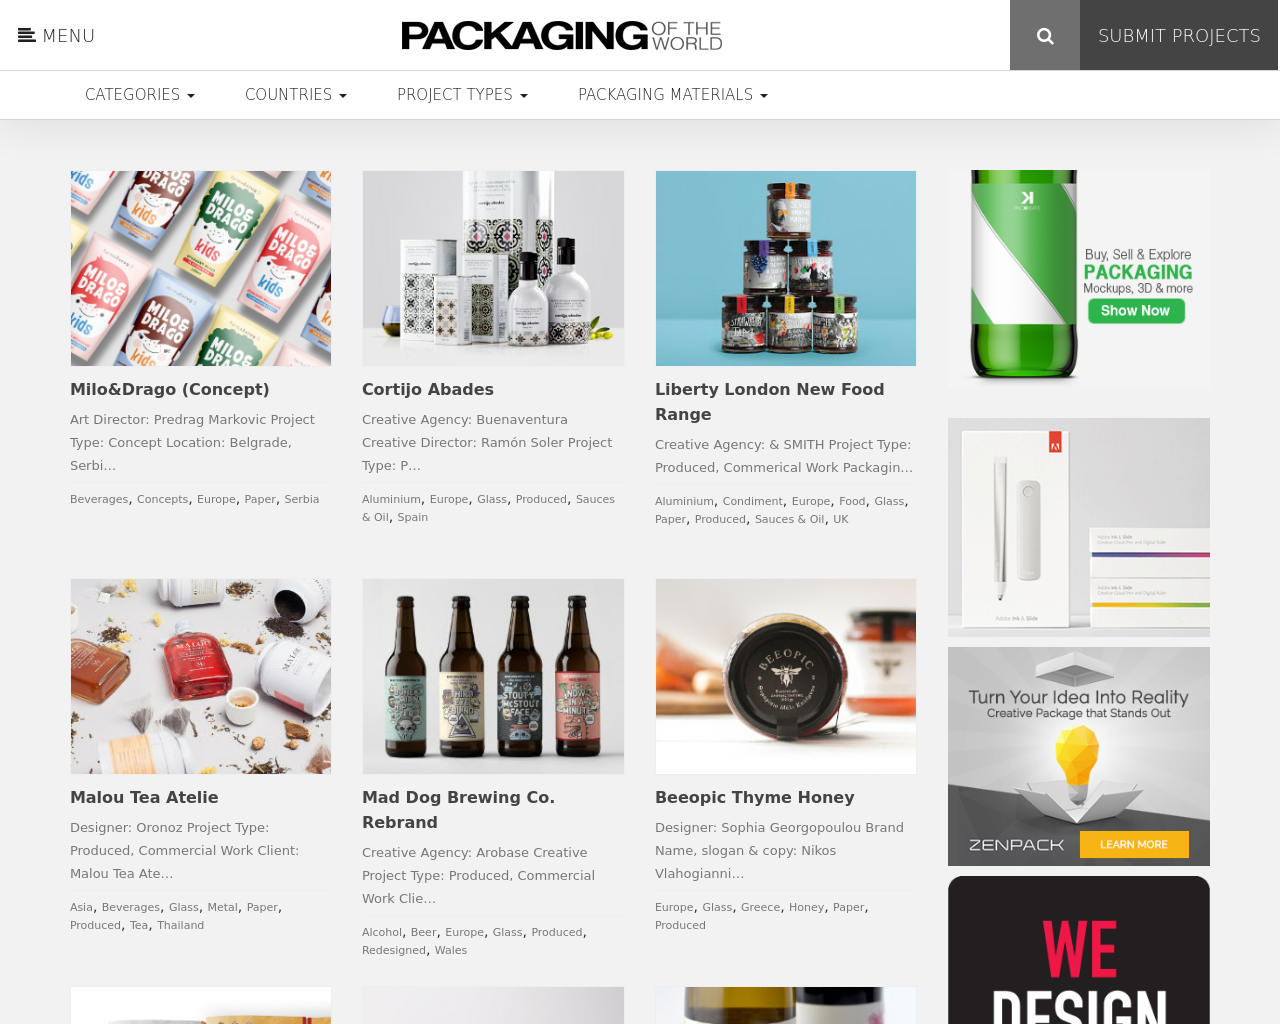 Packaging-Of-The-World-Advertising-Reviews-Pricing